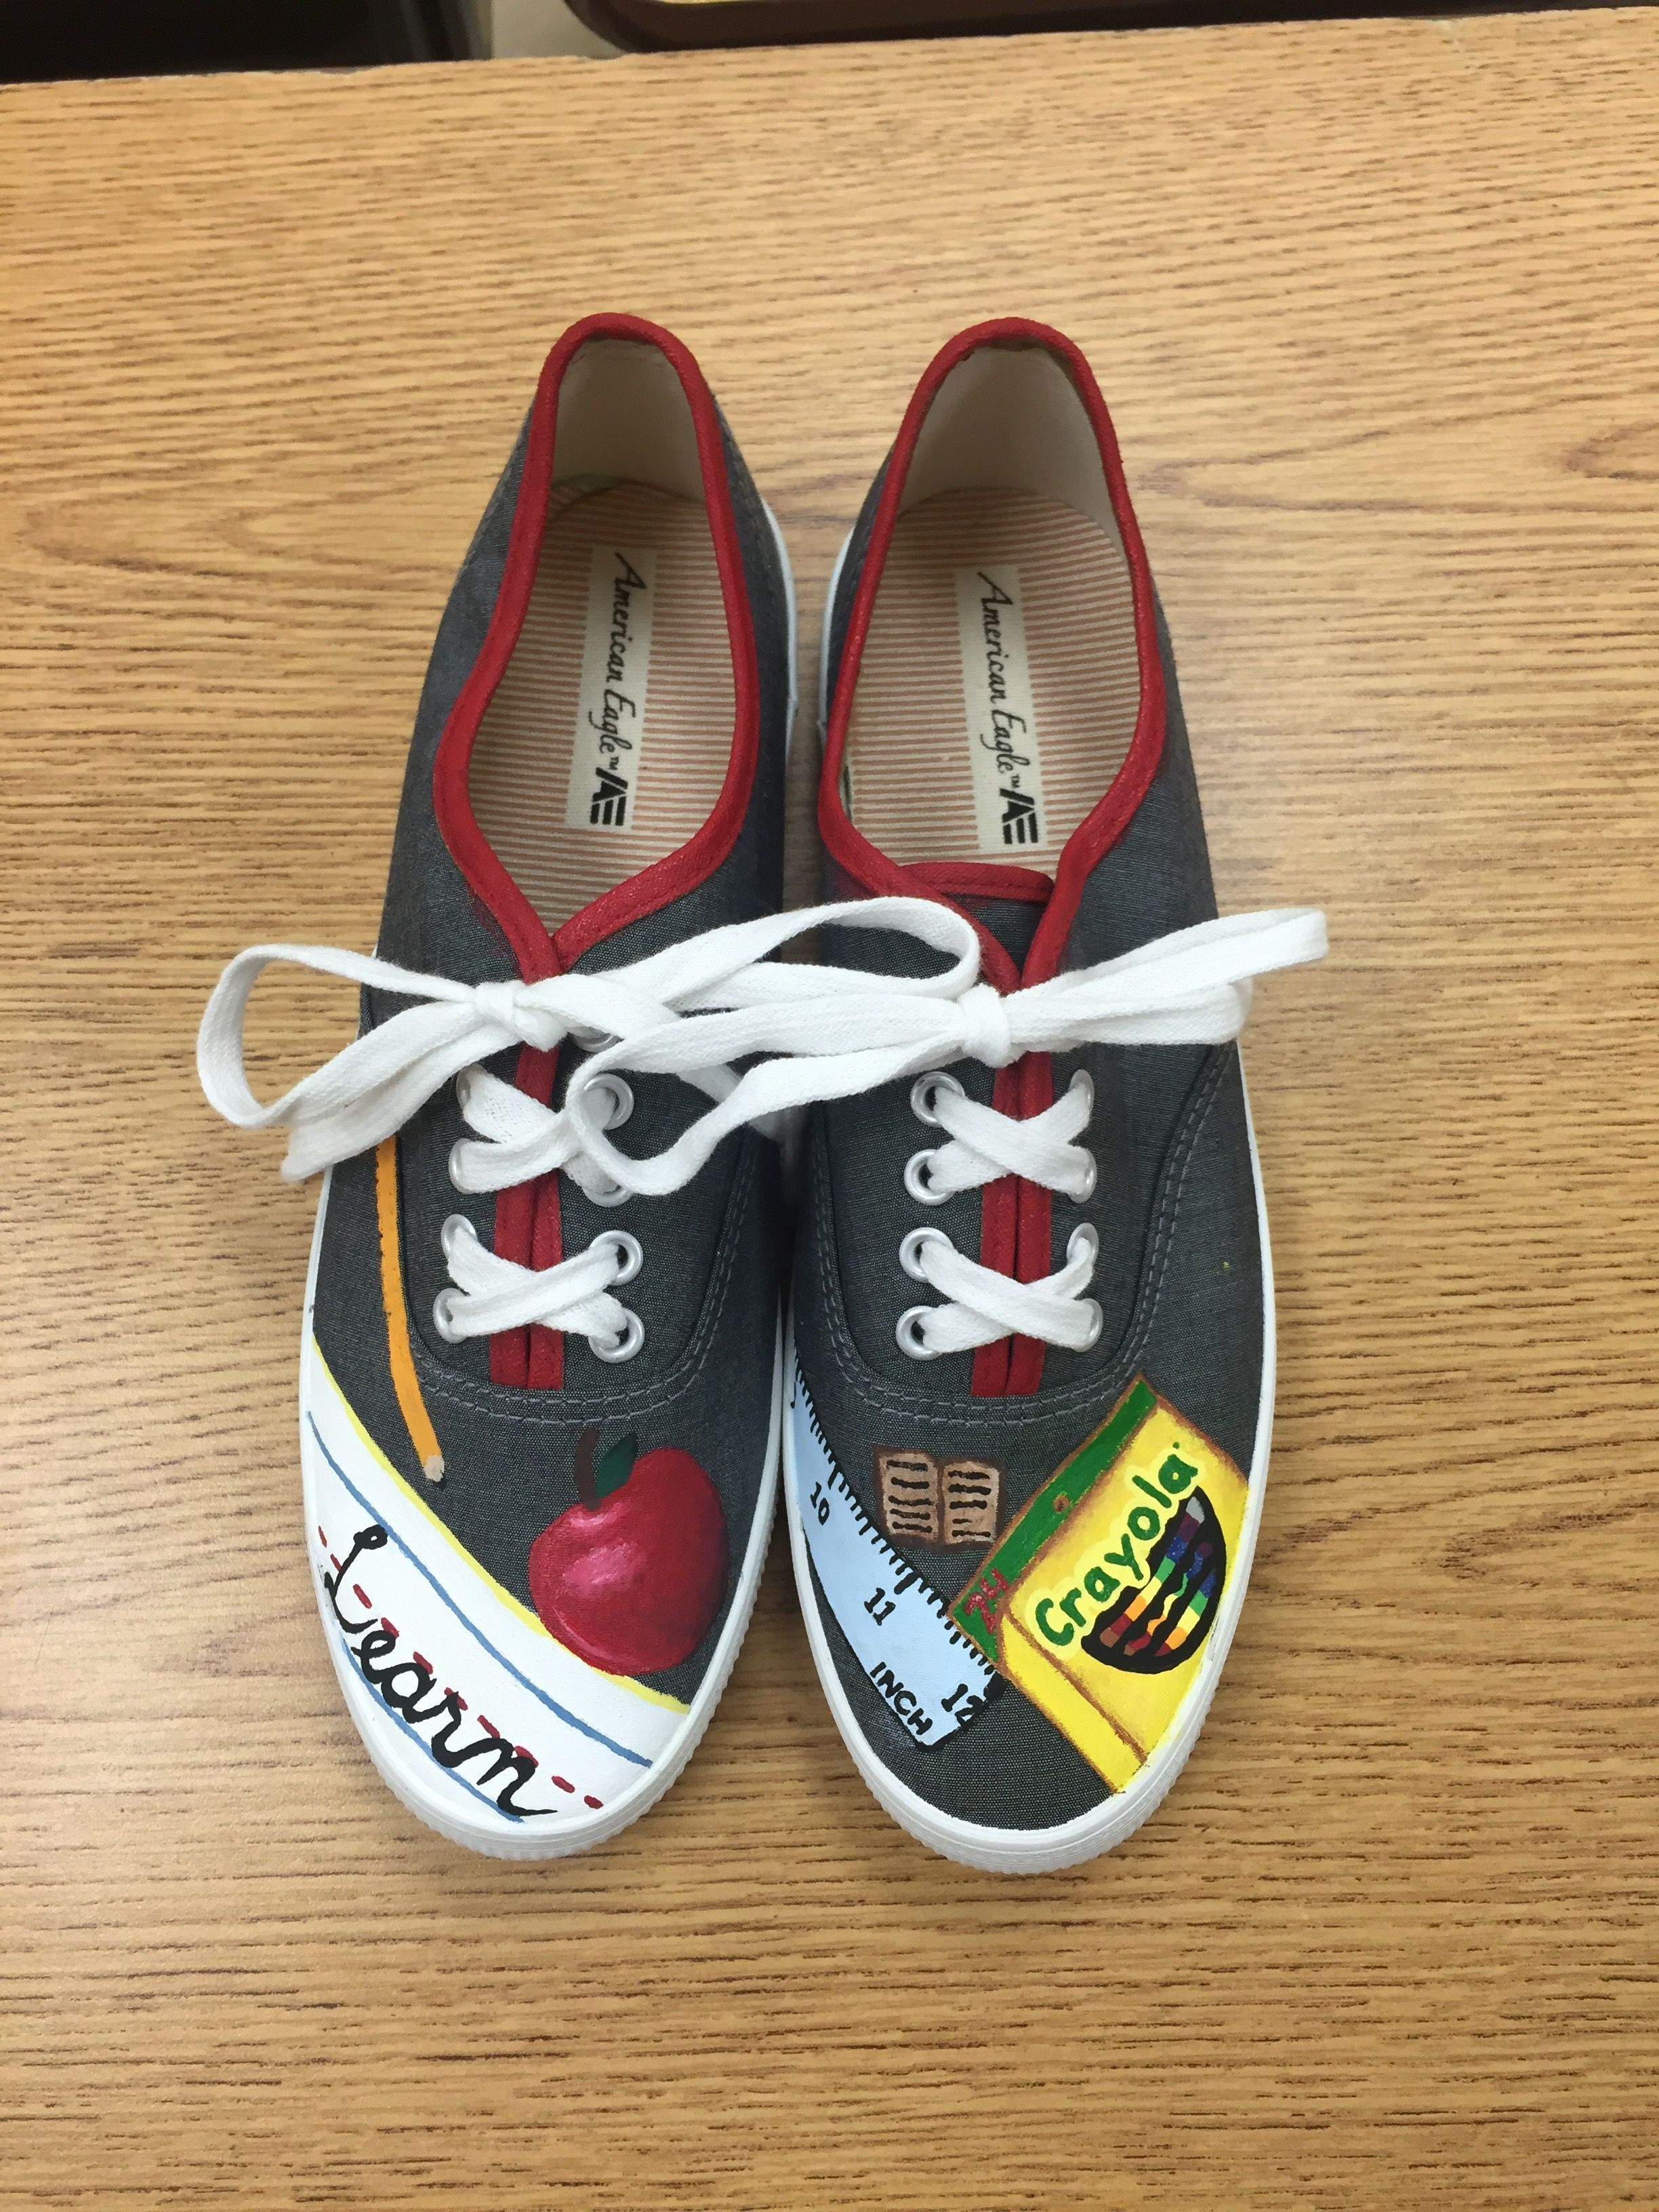 4fedc849d547d Painted Canvas Shoes - Teacher - Education | Brag Board - My ...